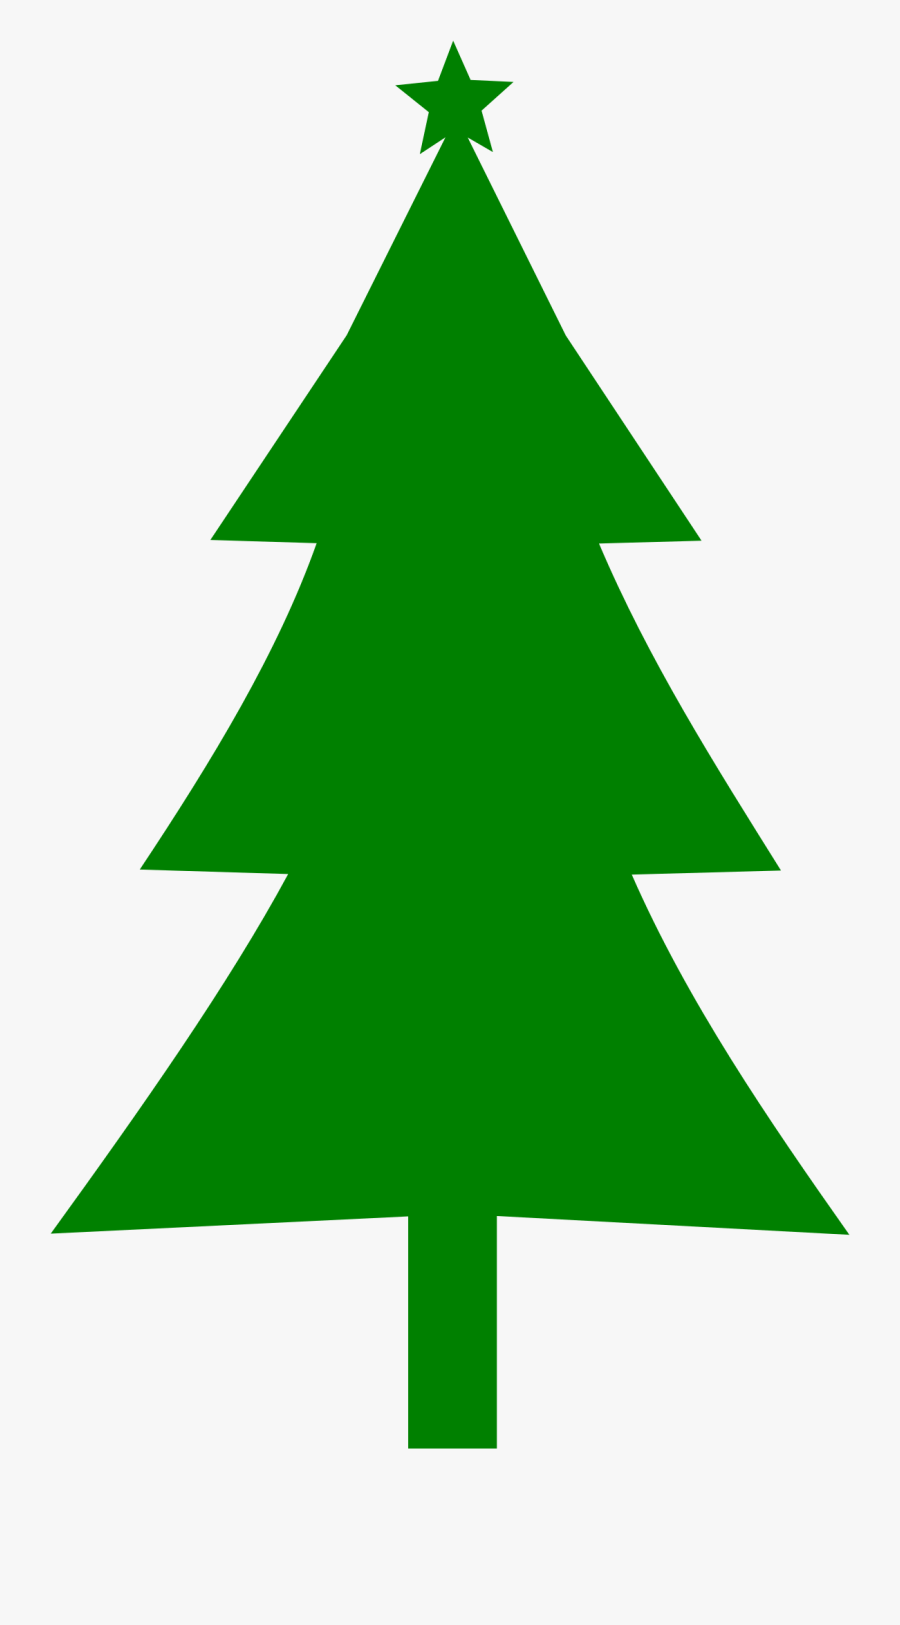 Evergreen Tree Silhouette At Getdrawings - Clip Art Red Christmas Tree, Transparent Clipart